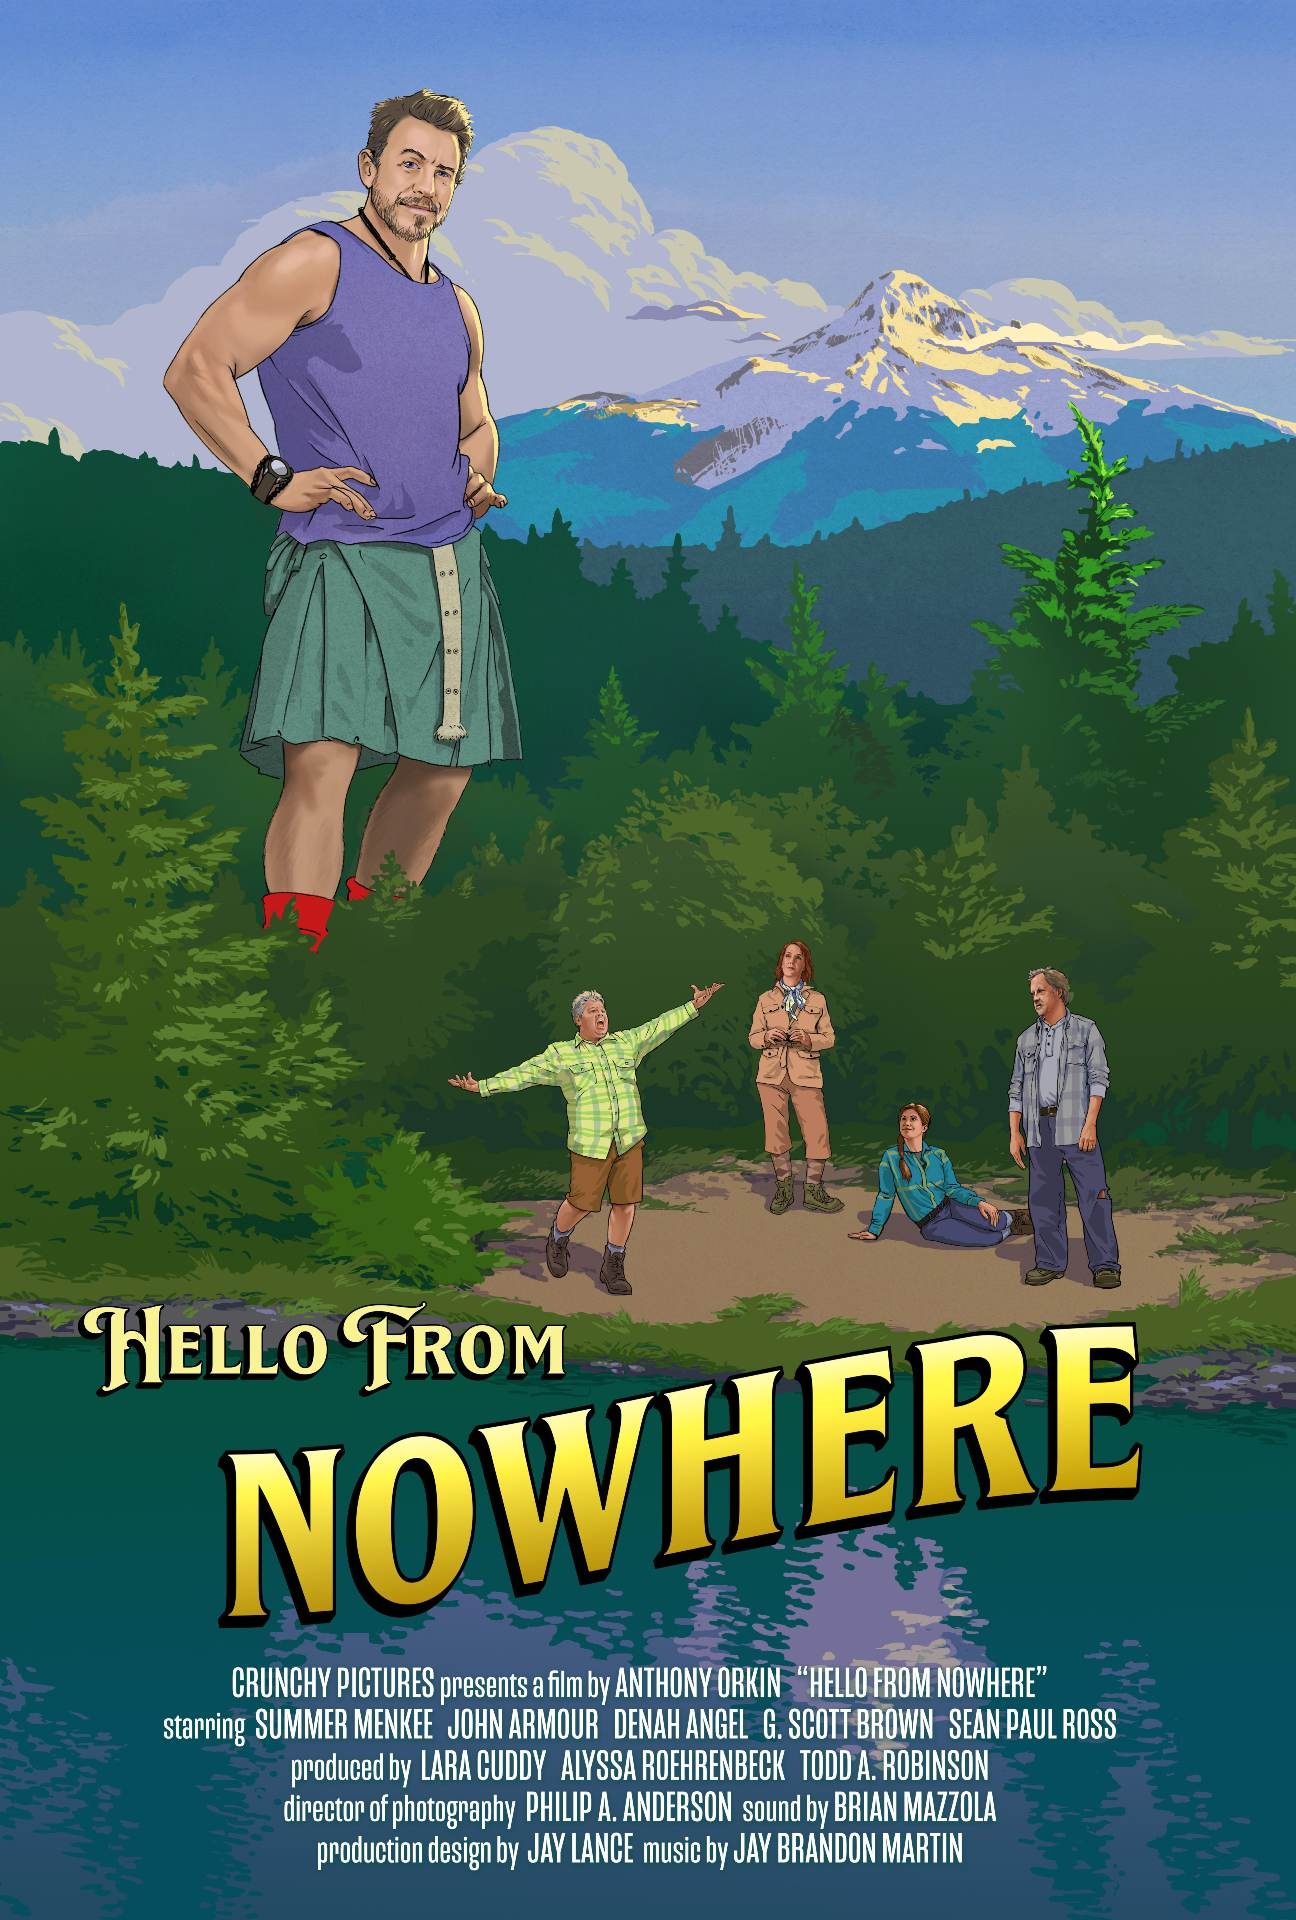 Anthony Orkin is the writer and director of the new film 'Hello from Nowhere'. Learn more about Orkin and the film here.